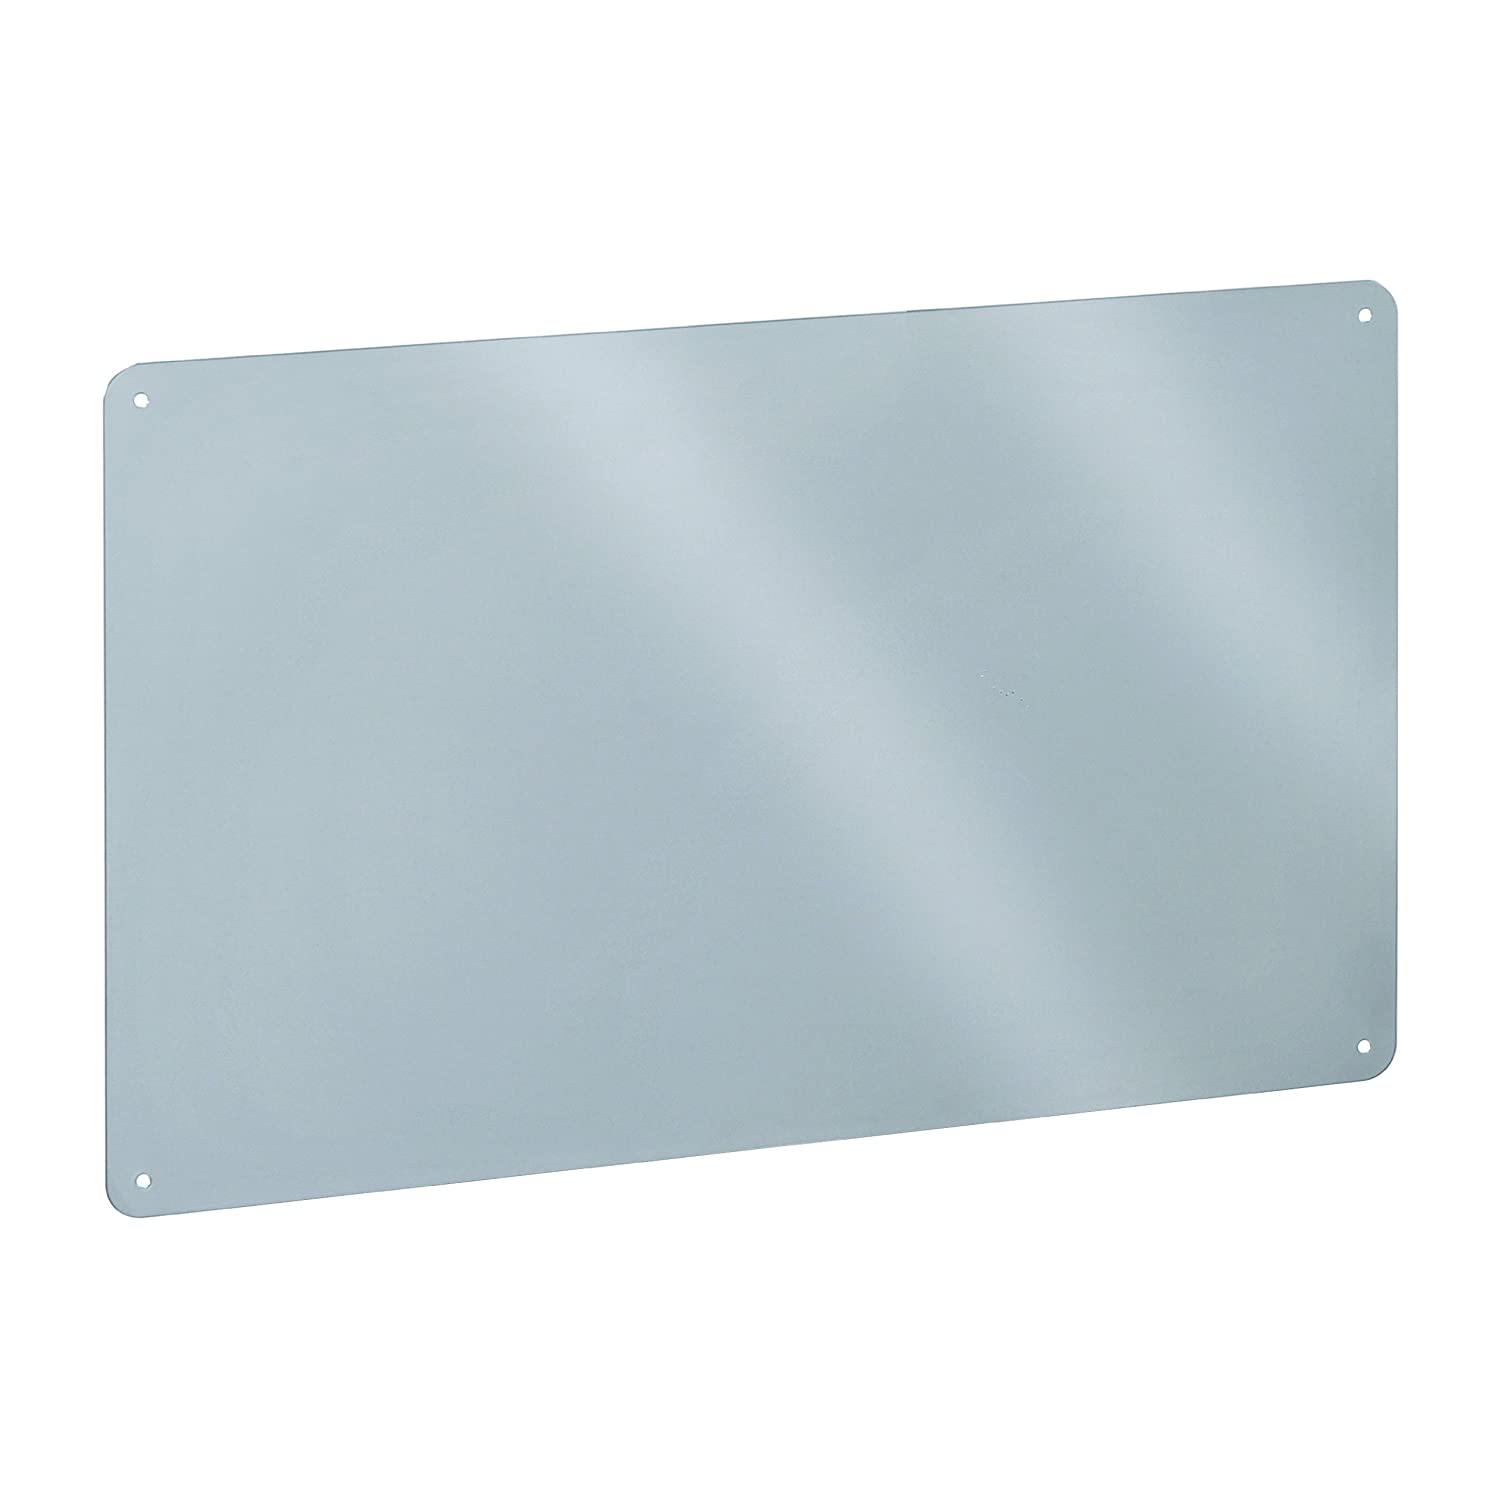 STEELMASTER Soho Collection Easel Style Magnetic Board, 8 x 10 Inches, Silver (270811E50) MMF Industries